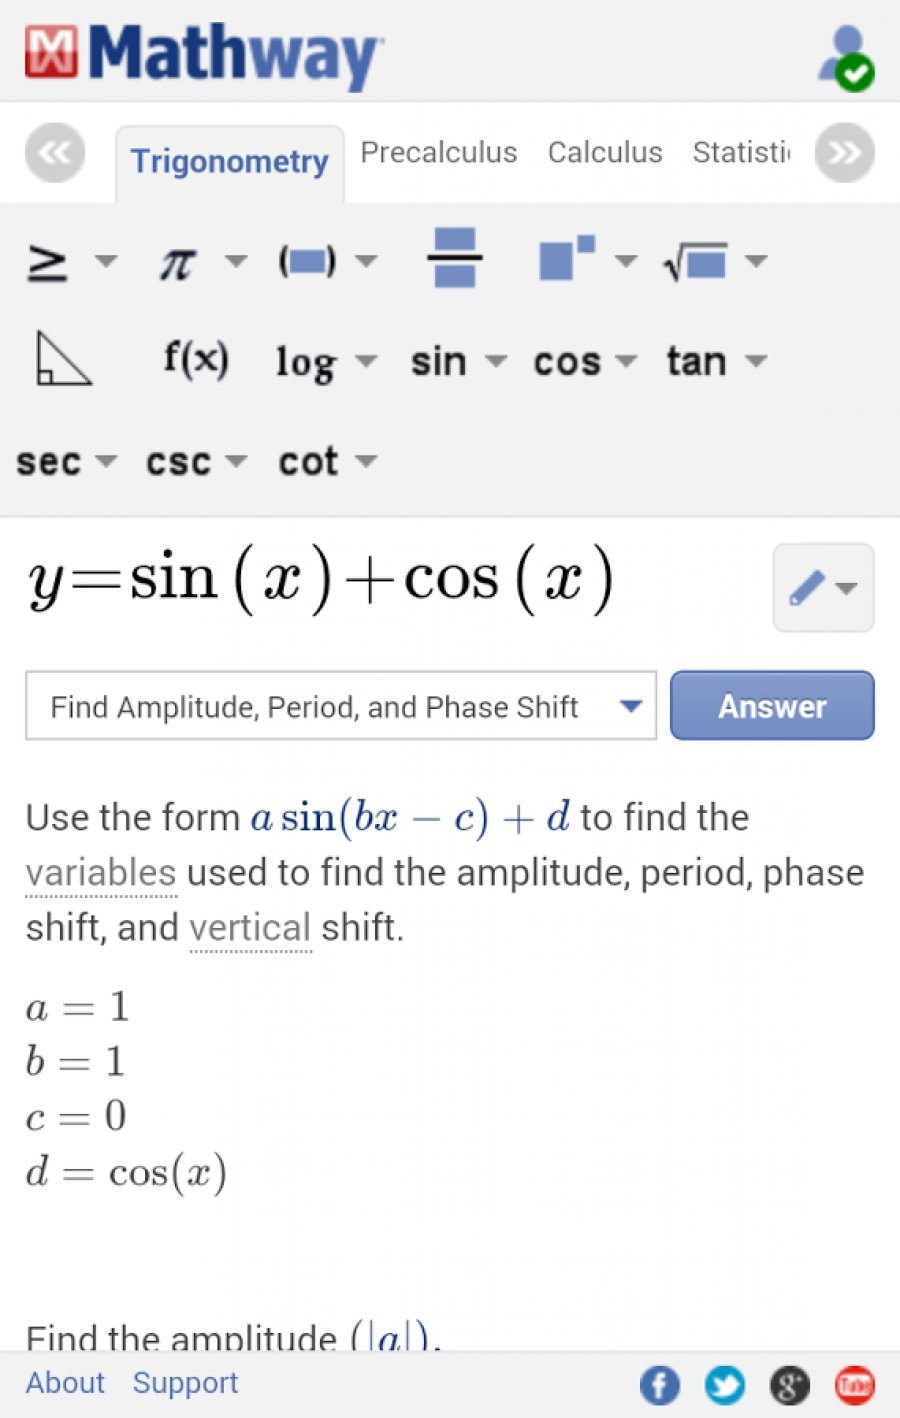 Mathway Apk For Android - Approm.org MOD Free Full Download ... on mod ash, mod games, mod art,